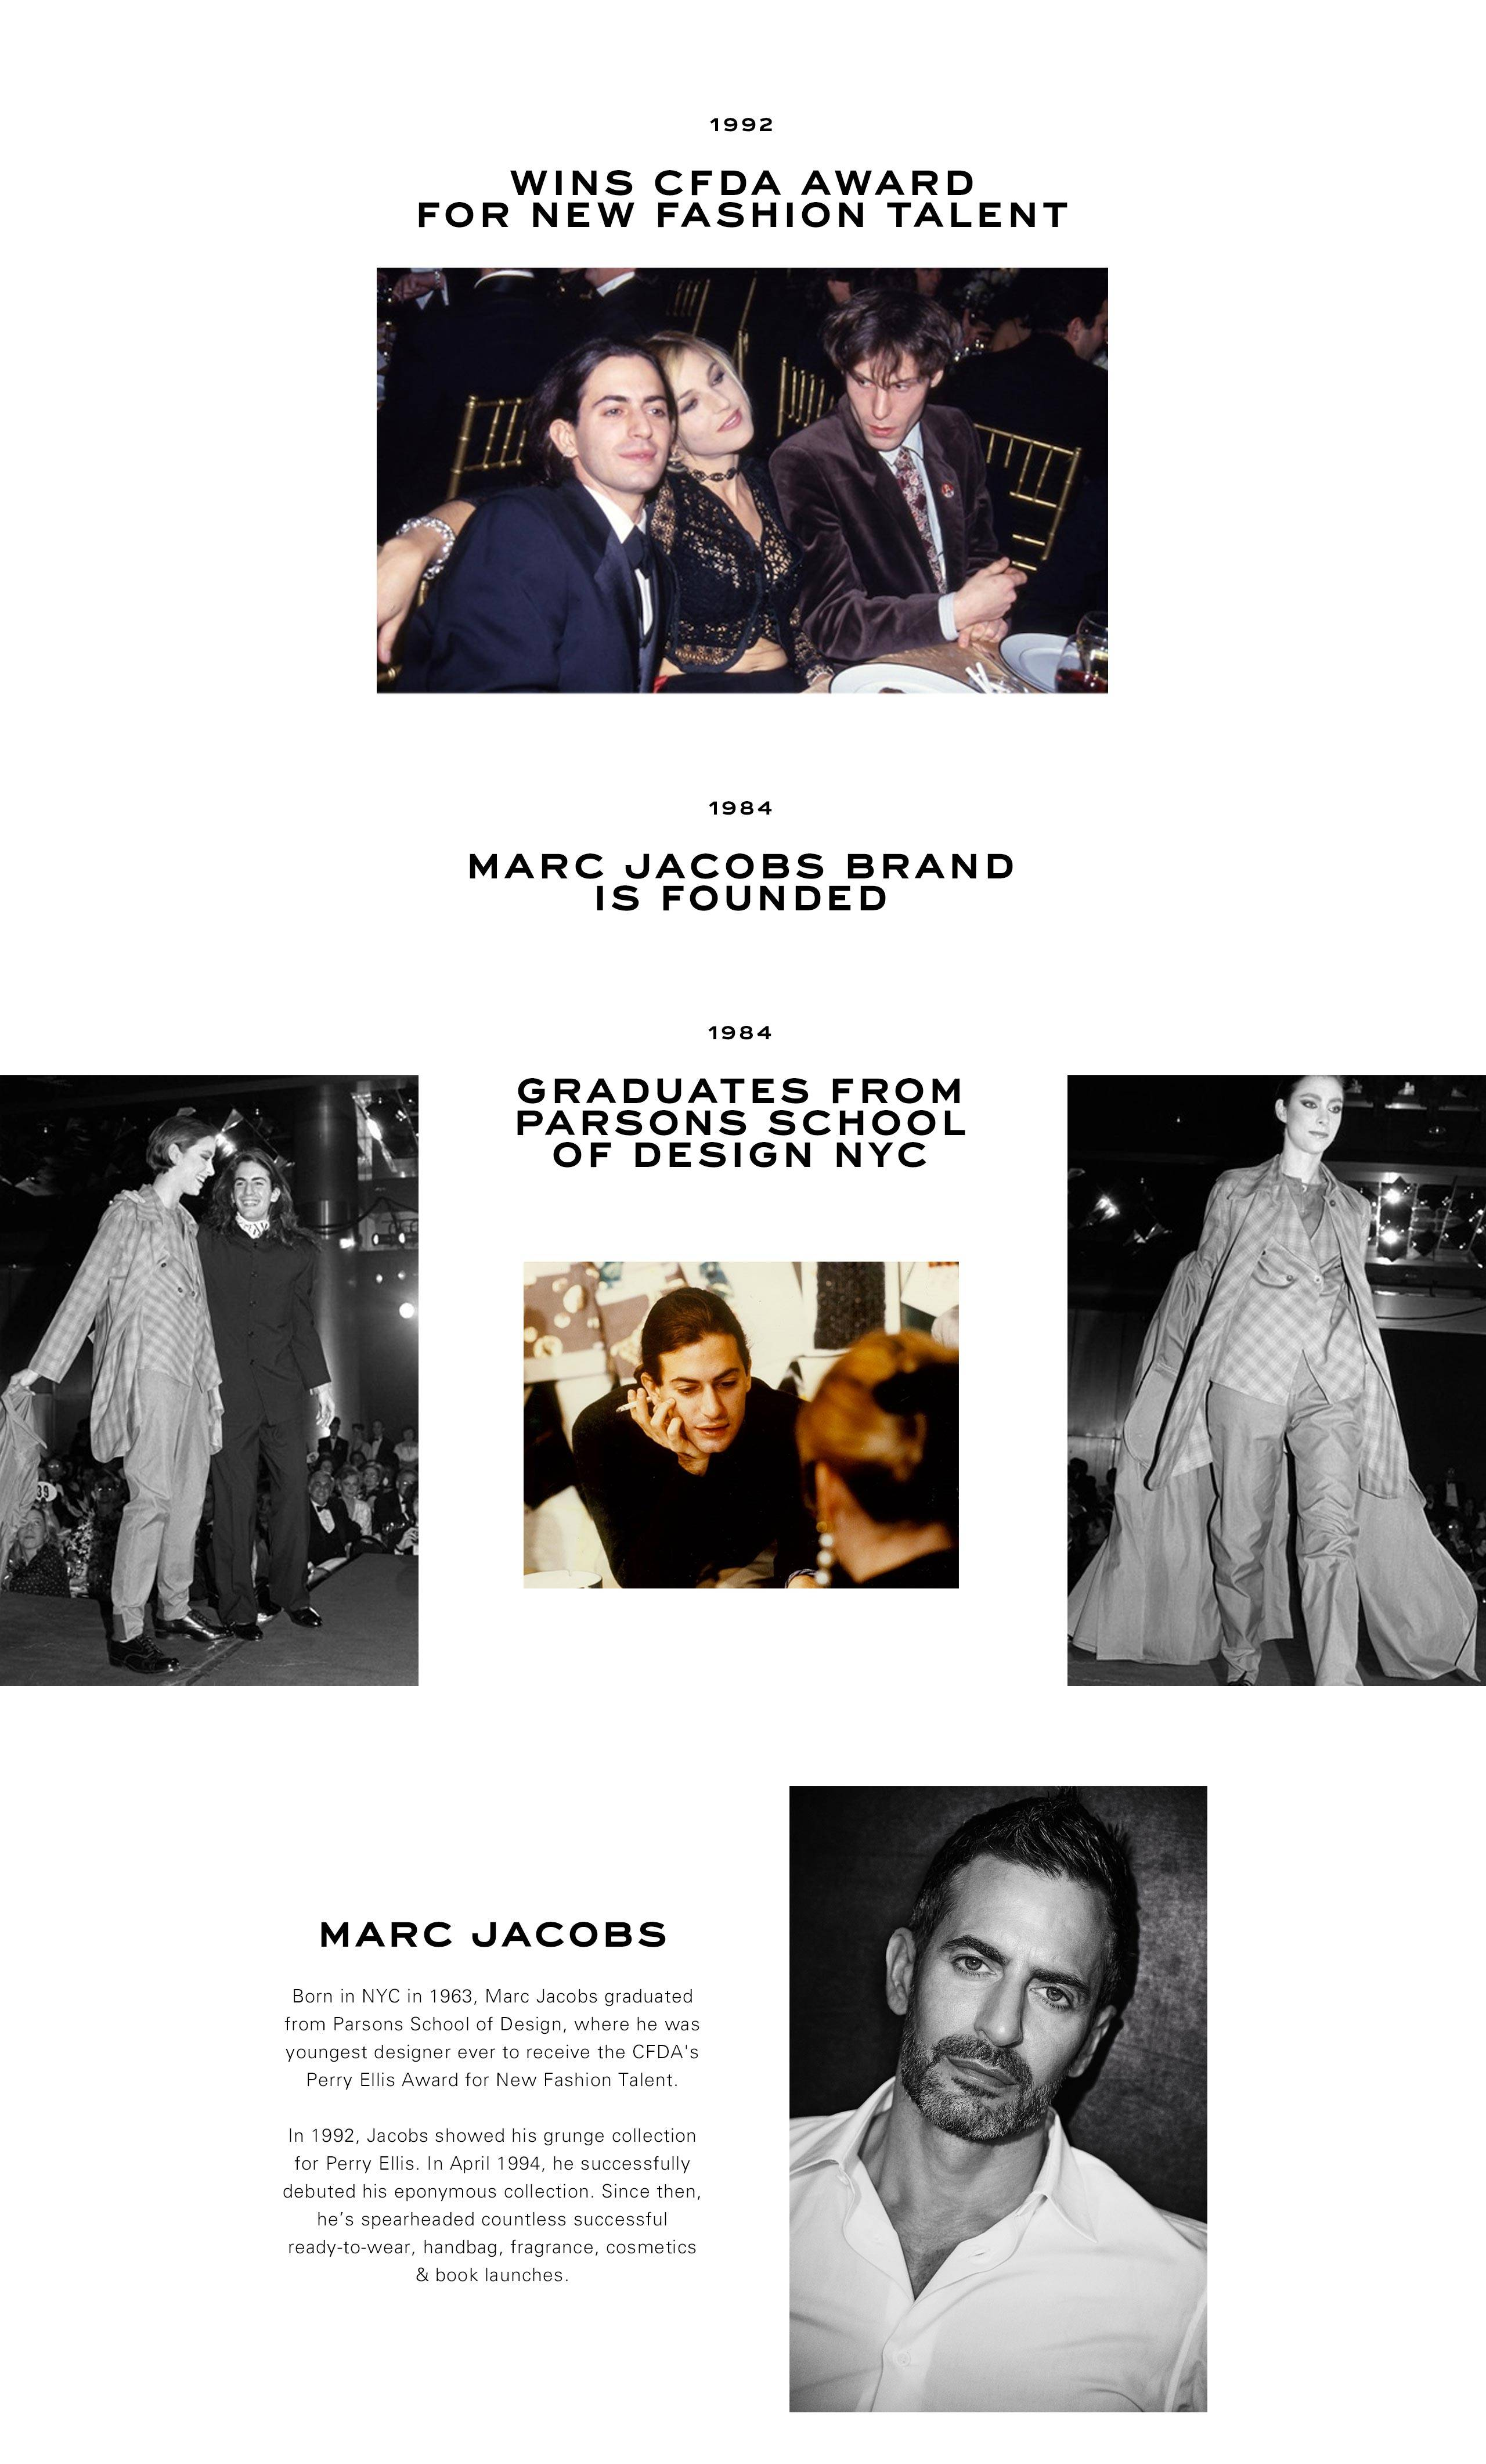 1992: Wins CFDA Award for new fashion talent. 1984: Marc Jacobs brand is founded. 1984: Graduates from Parsons School of Design NYC.